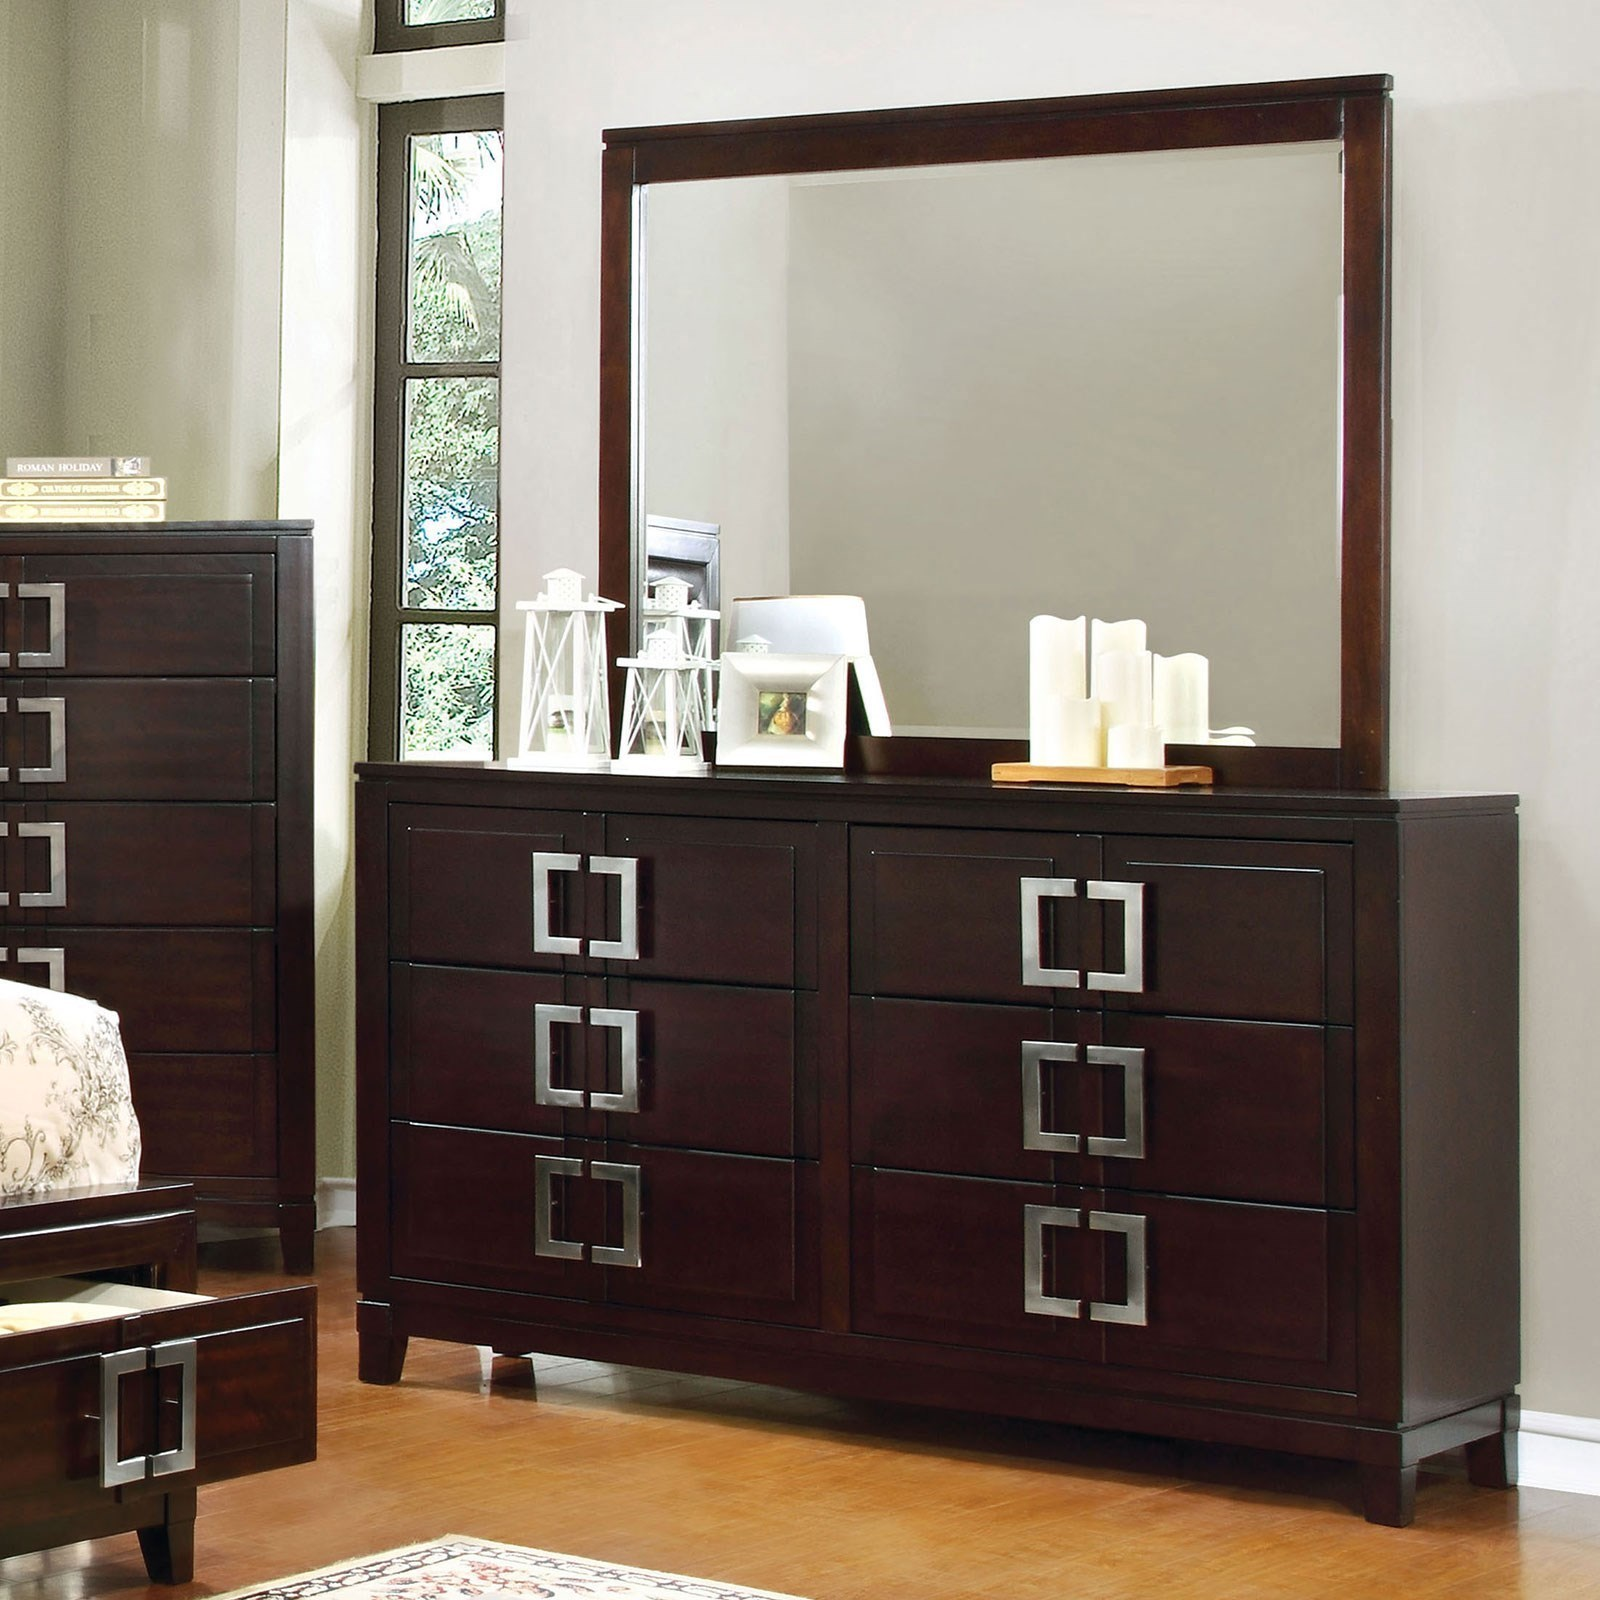 Balfour Dresser and Mirror Combination at Household Furniture